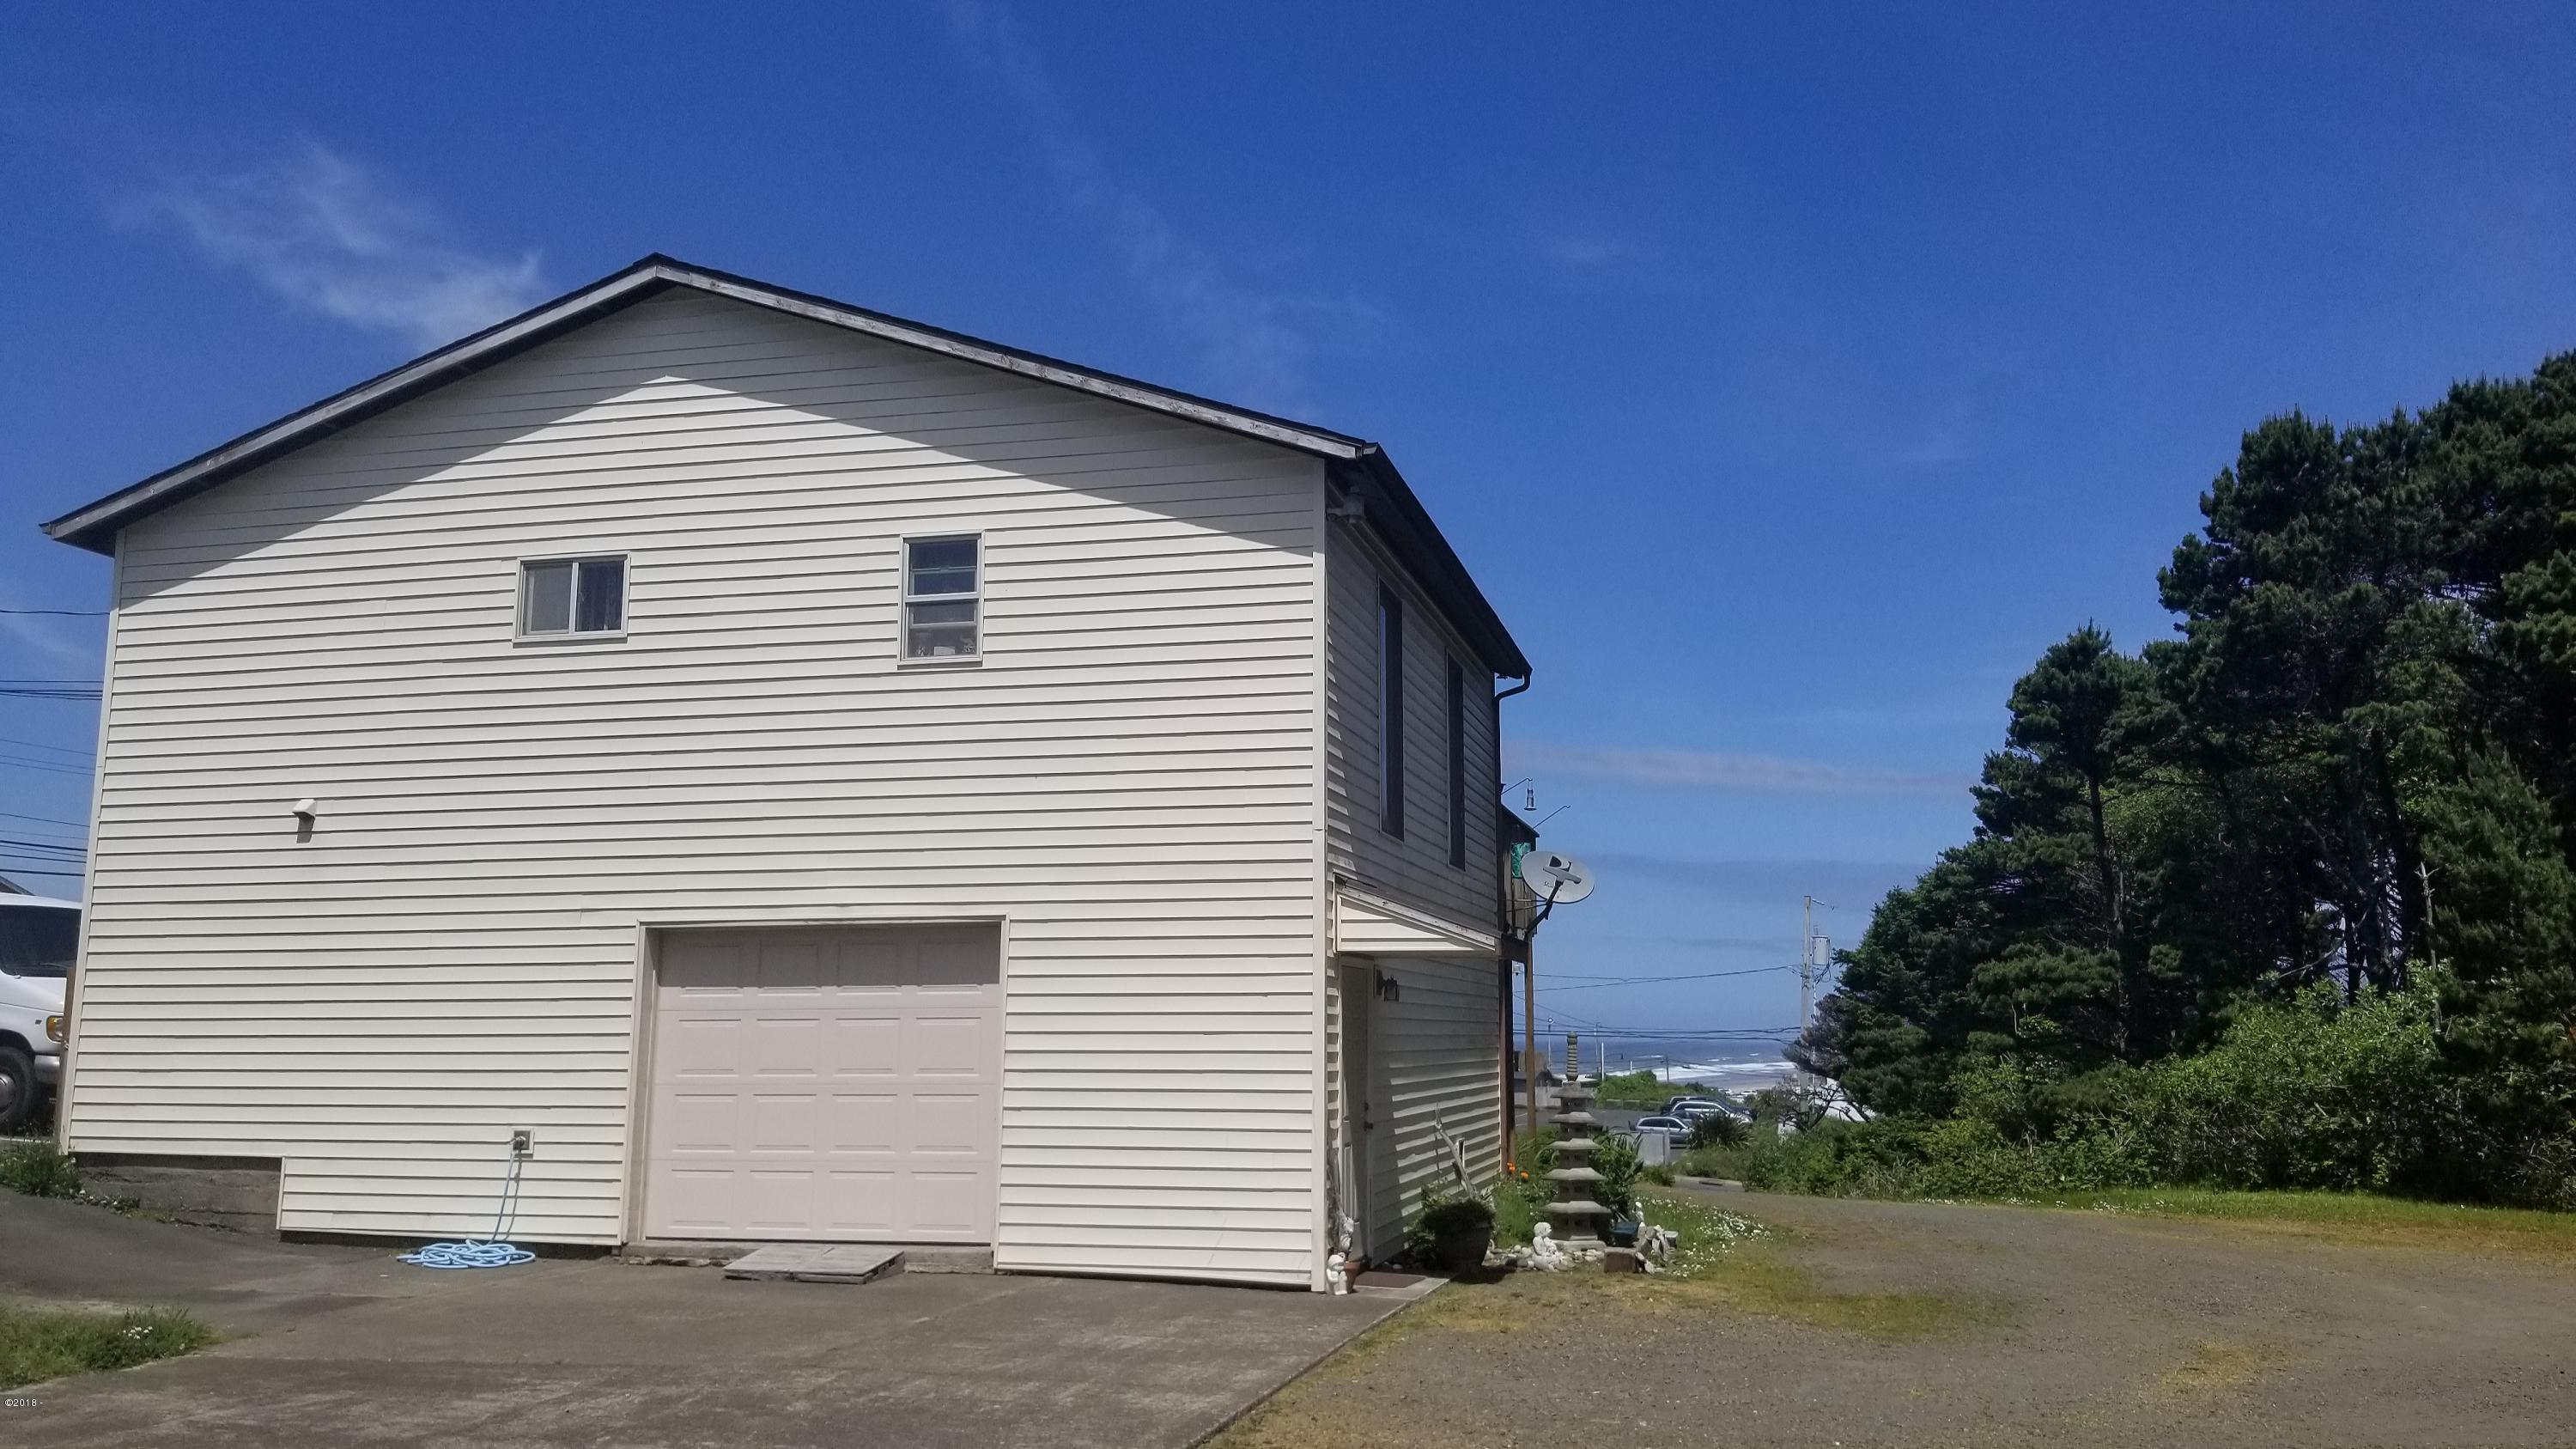 340 SE Hwy 101, Lincoln City, OR 97367 - 20180605_115908